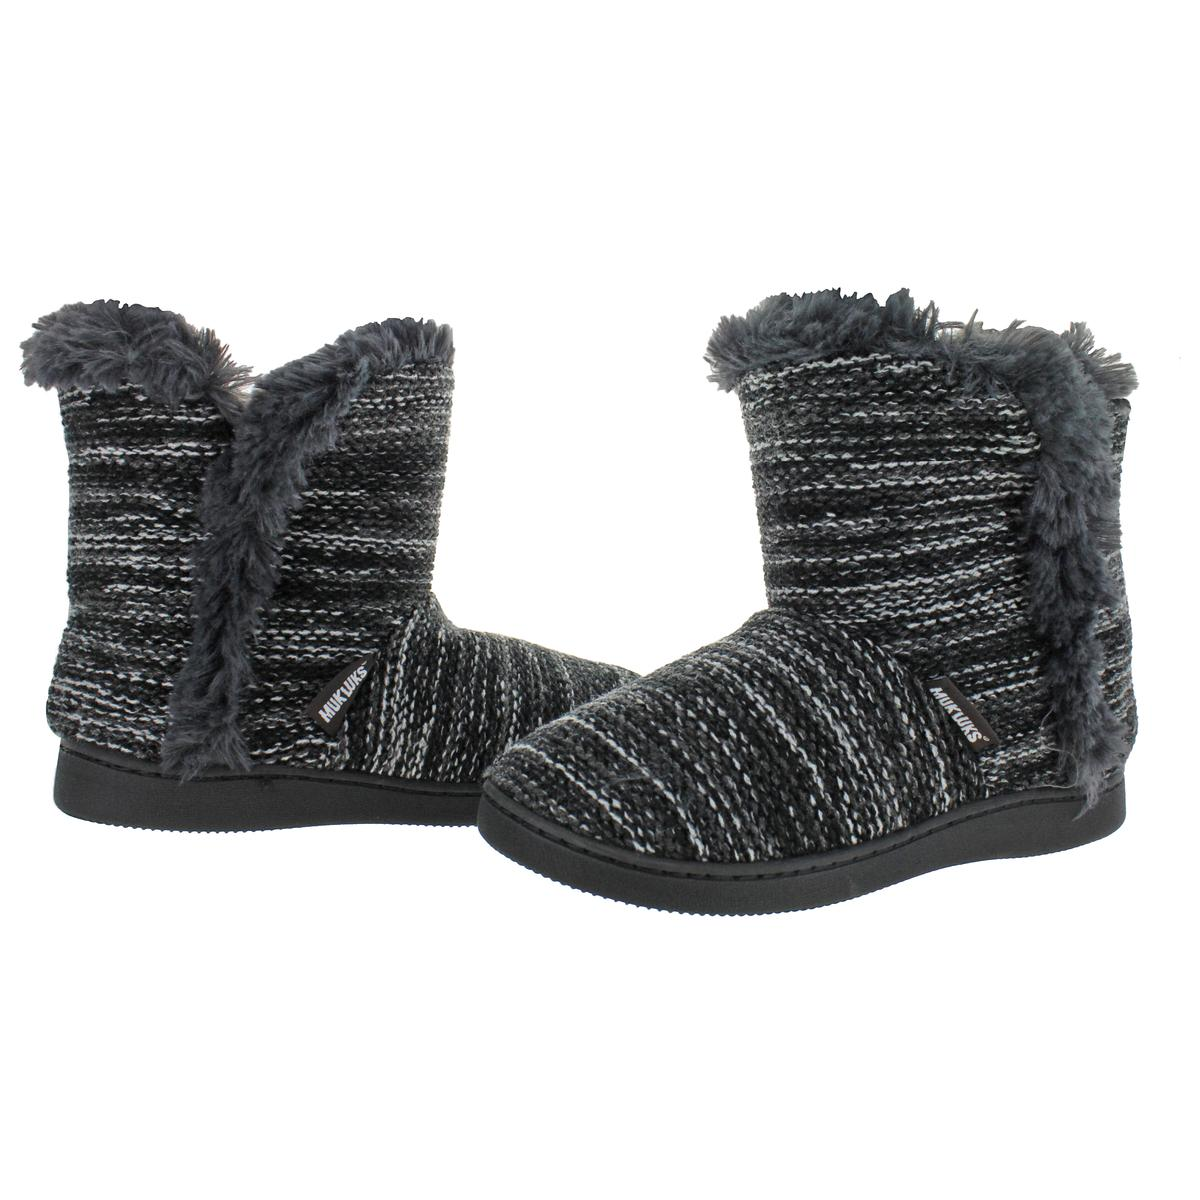 Muk-Luks-Cheyenne-Women-039-s-Short-Knit-Sweater-Bootie-Slippers-House-Shoes thumbnail 3